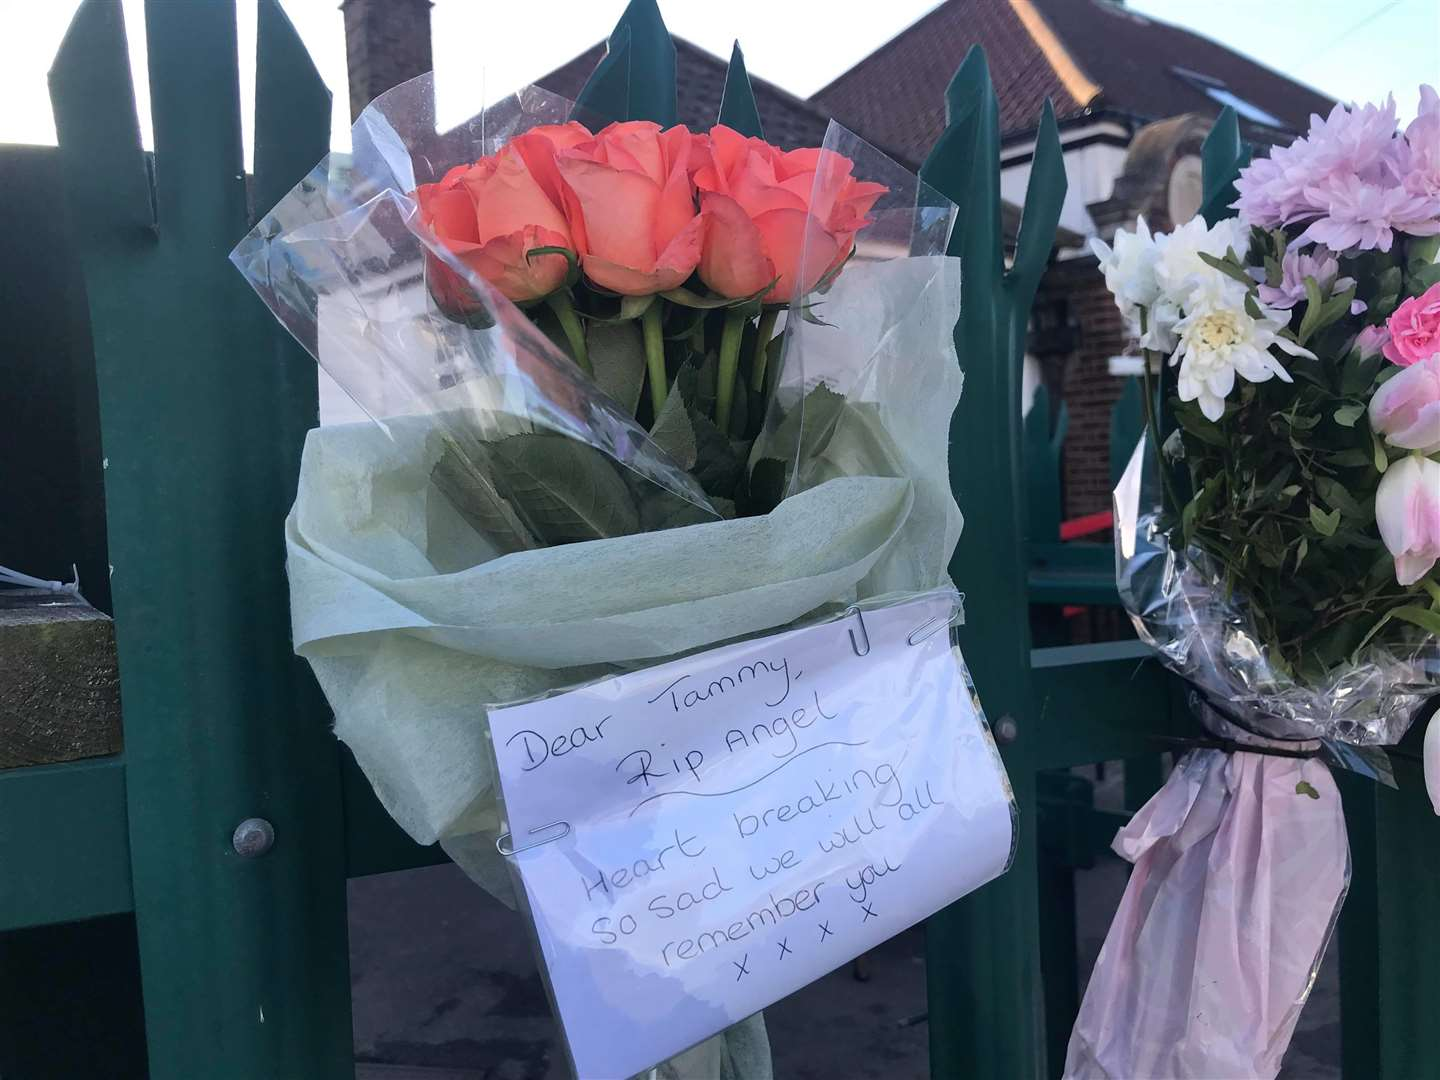 Flowers and messages have been left outside the school